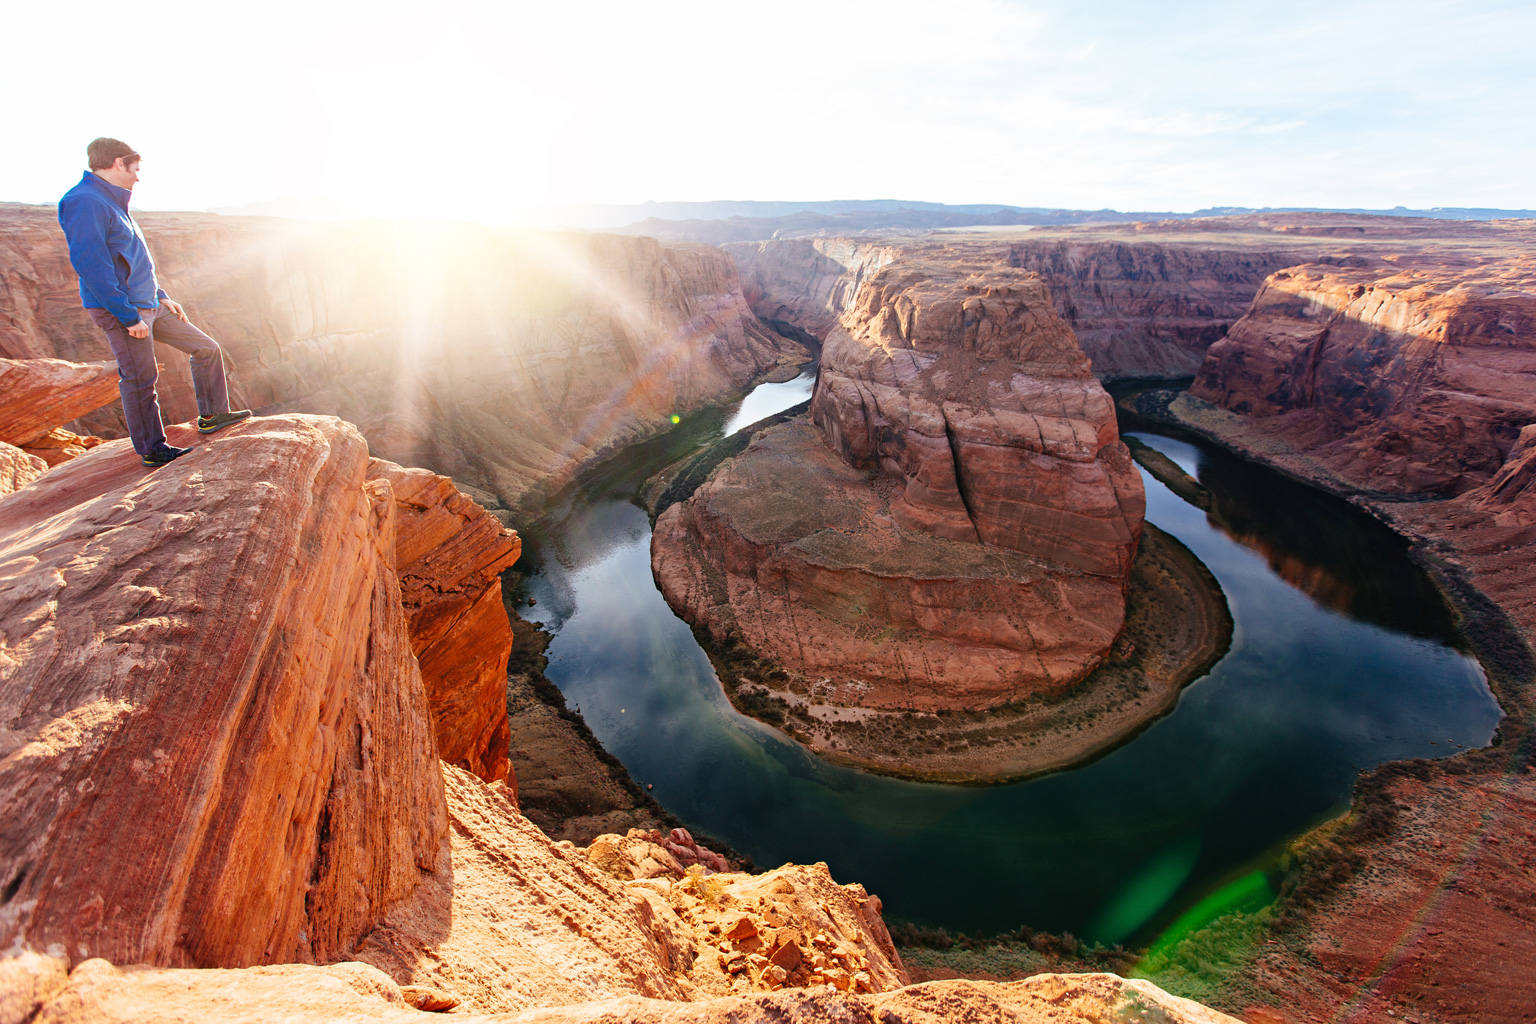 CindyGiovagnoli_Arizona_Horseshoe_Bend_Colorado_River_photography-002.jpg